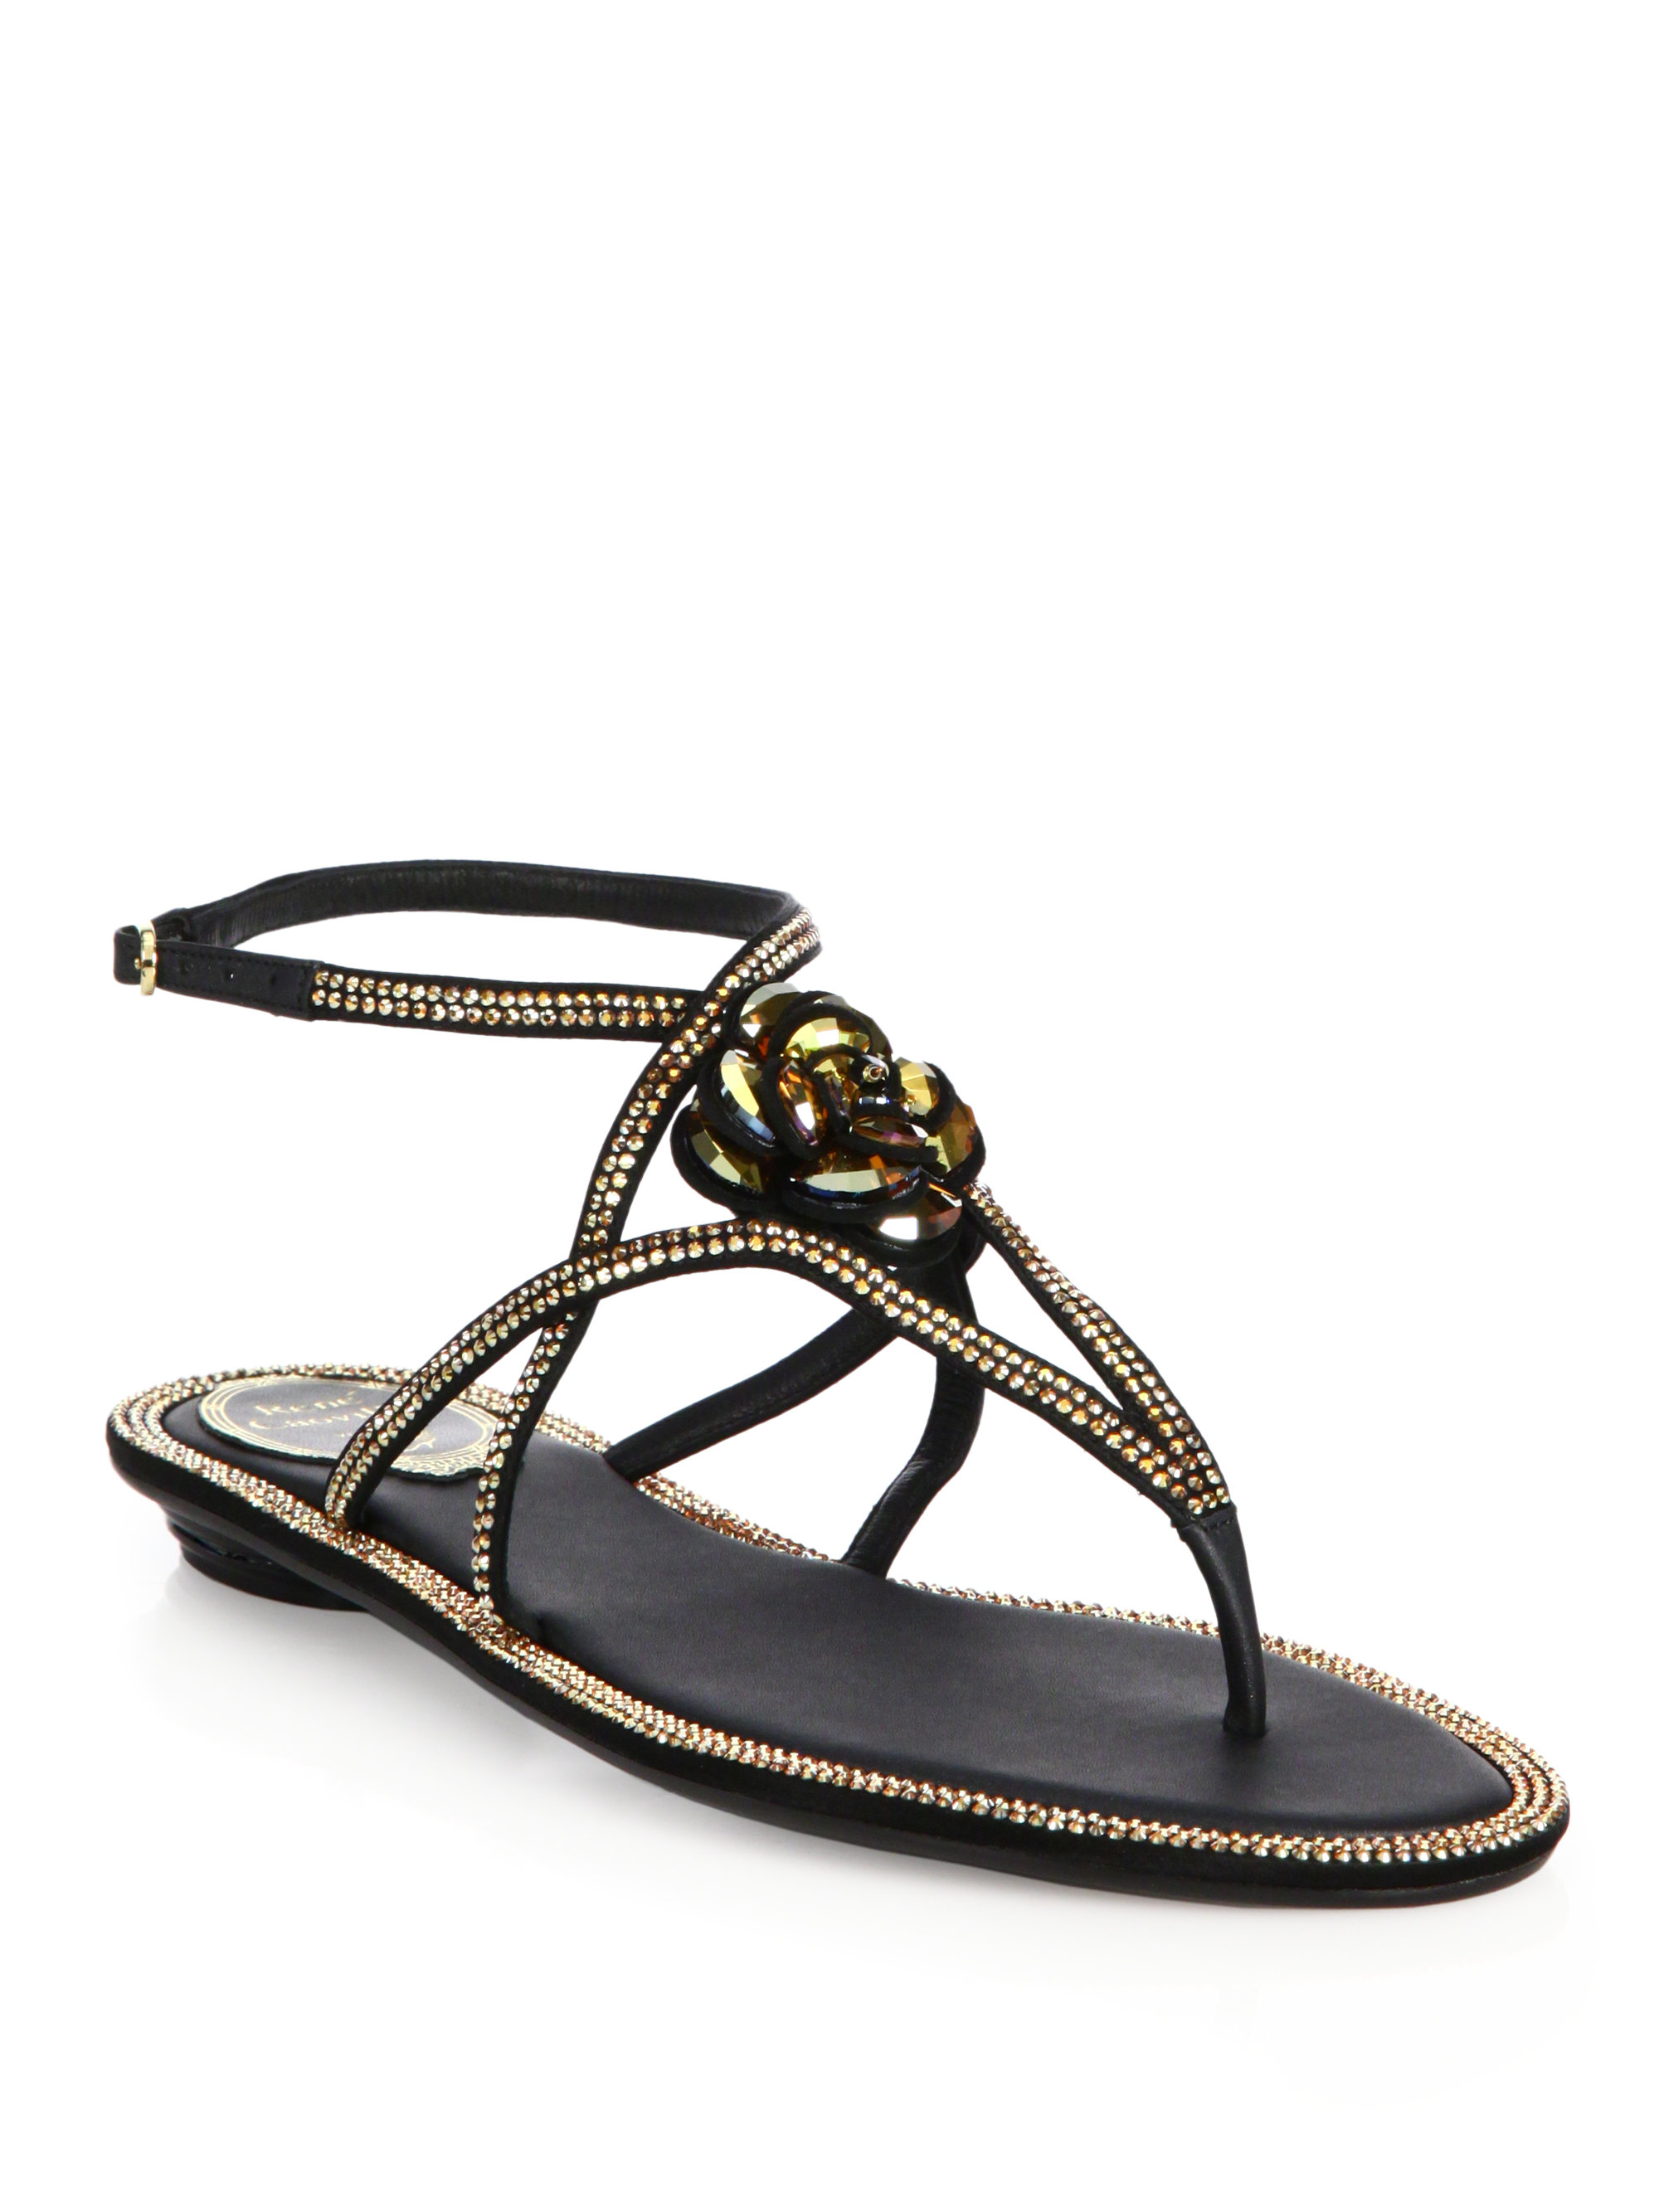 embellished thong sandals - Black Rene Caovilla 06p50